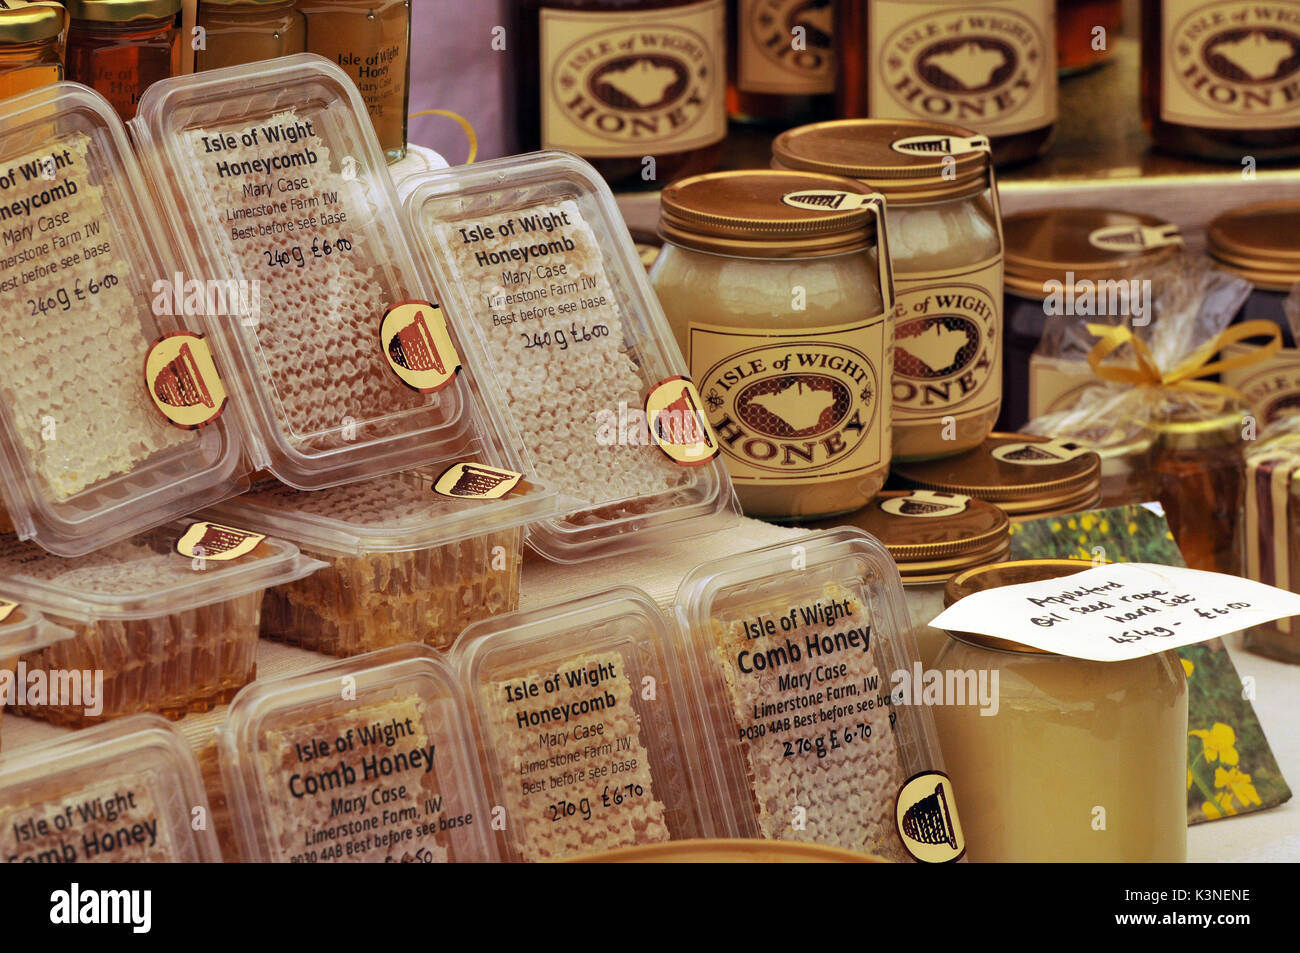 hone for sale at a craft tent at a show in the summer on the isle of wight home made honey from local beekeepers in jars or honeycombs naturally good - Stock Image